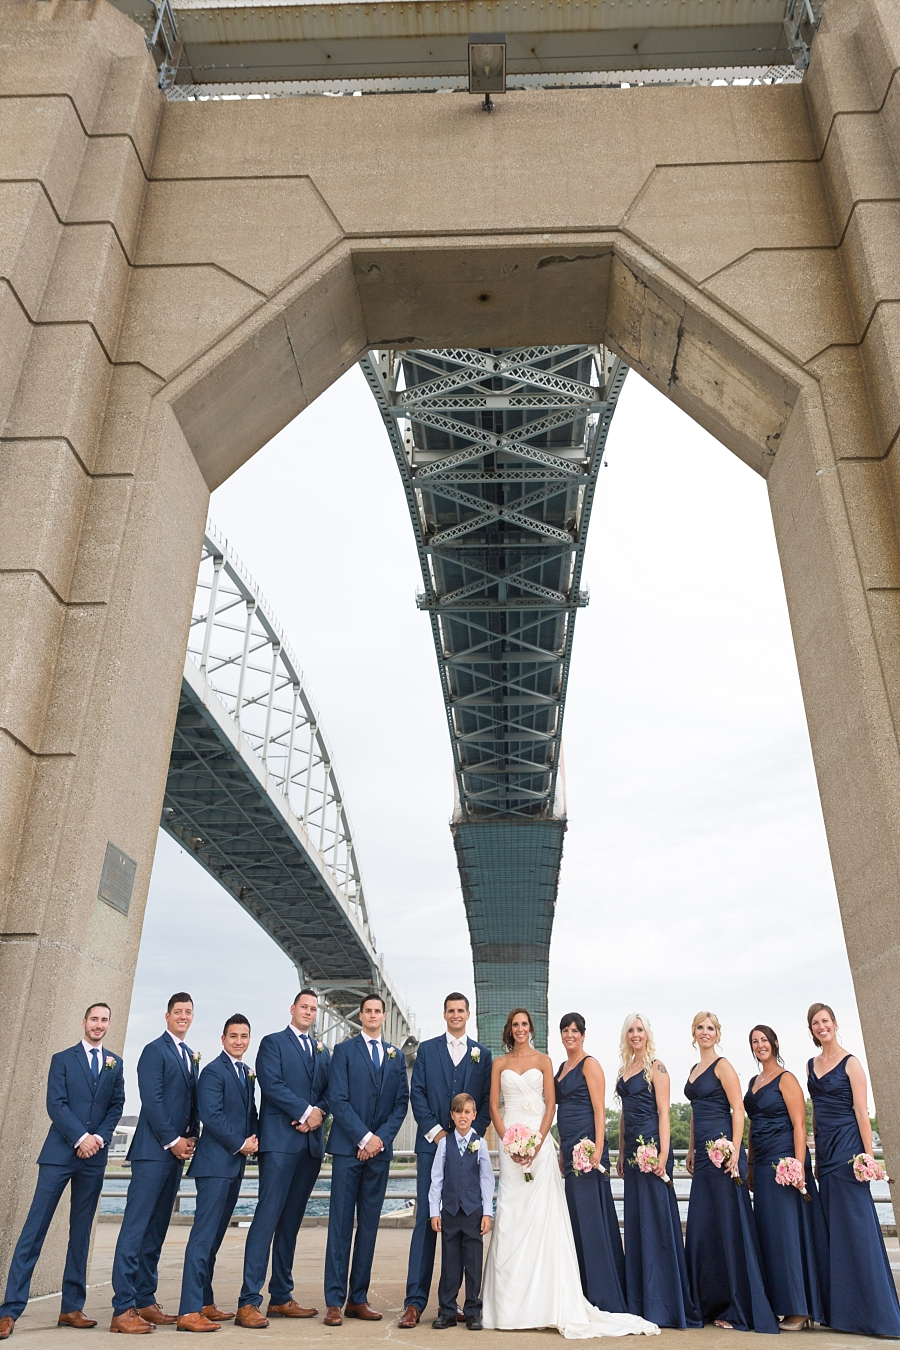 Stacy-Anderson-Photography-Sarnia-Toronto-Ontario-Wedding-Photographer_0035.jpg